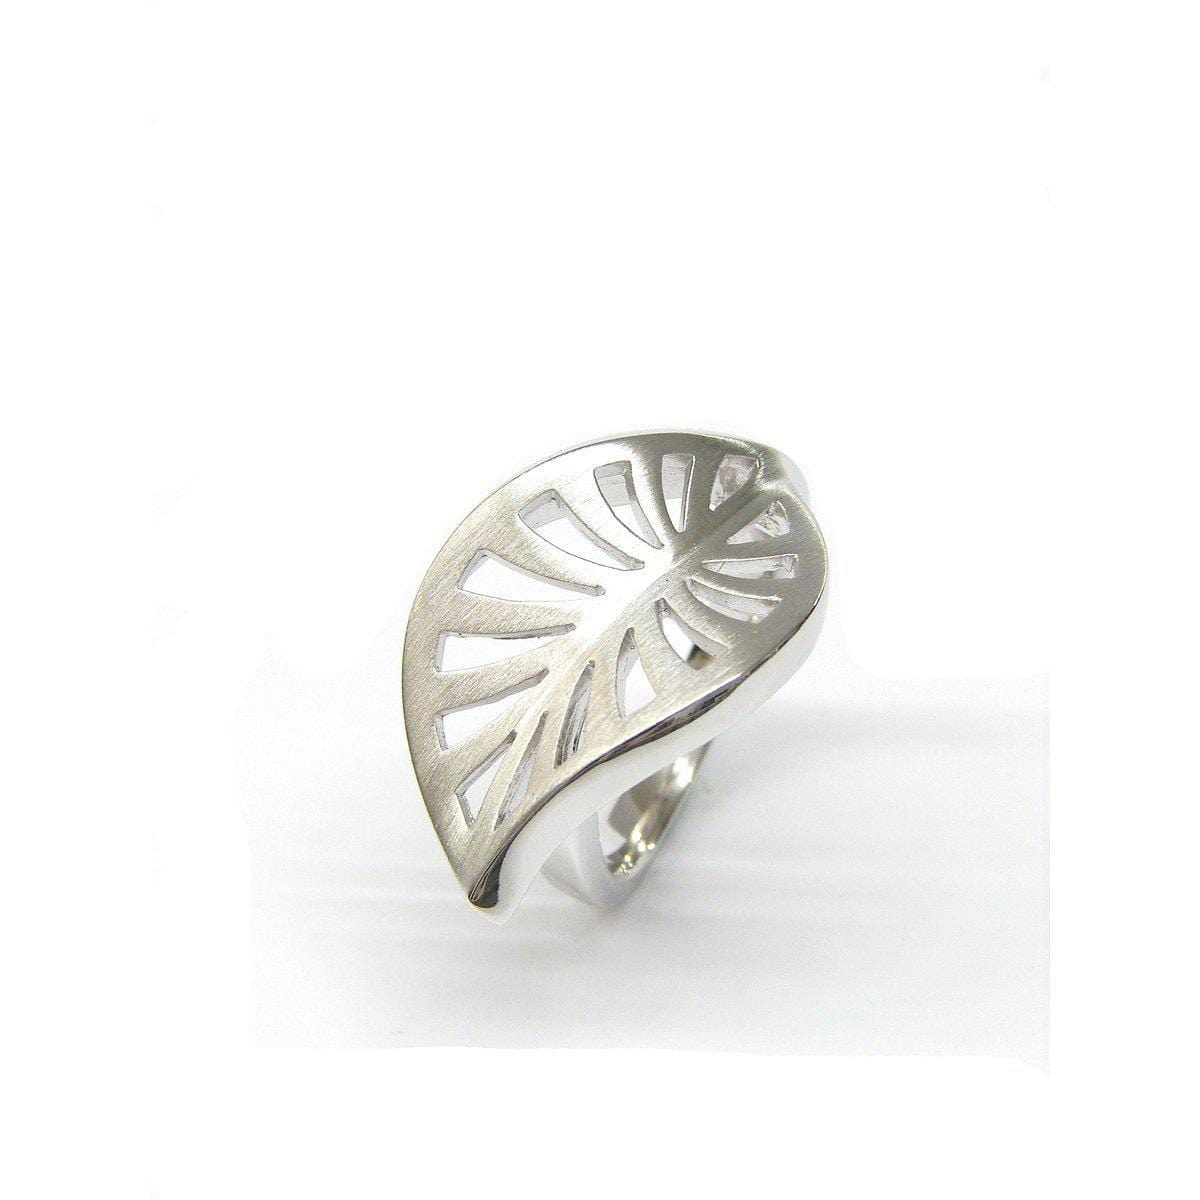 Rhodium Plated Sterling Silver Ring - 44/84812-Breuning-Renee Taylor Gallery